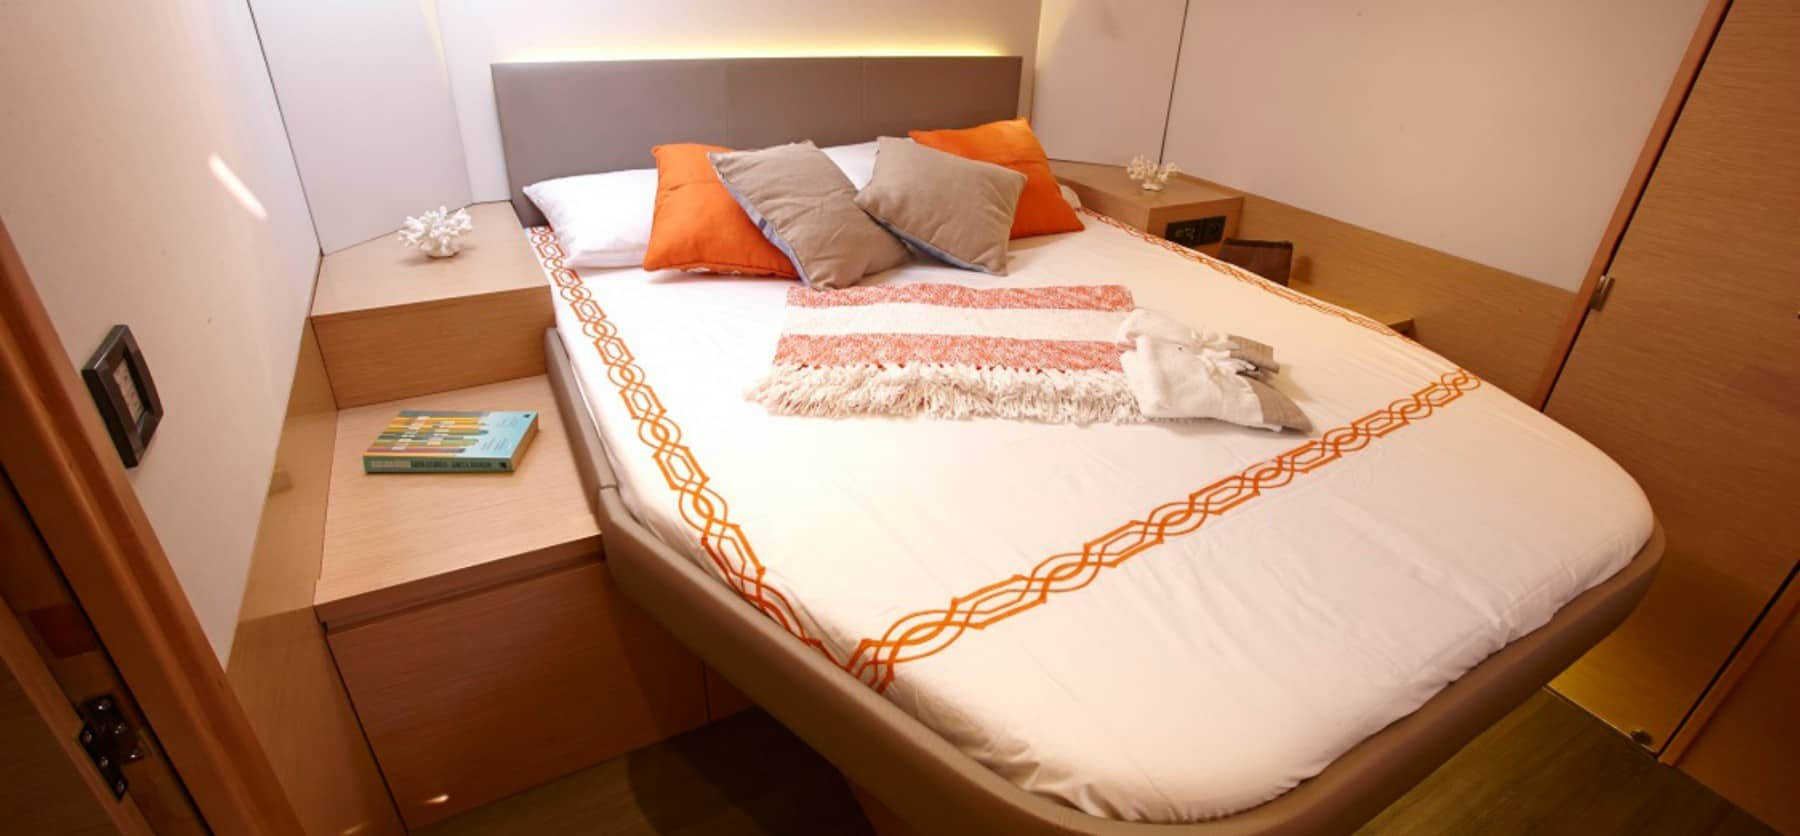 Beautiful double bed in one of the cabins in the Fountain Pajot Ipanema 58